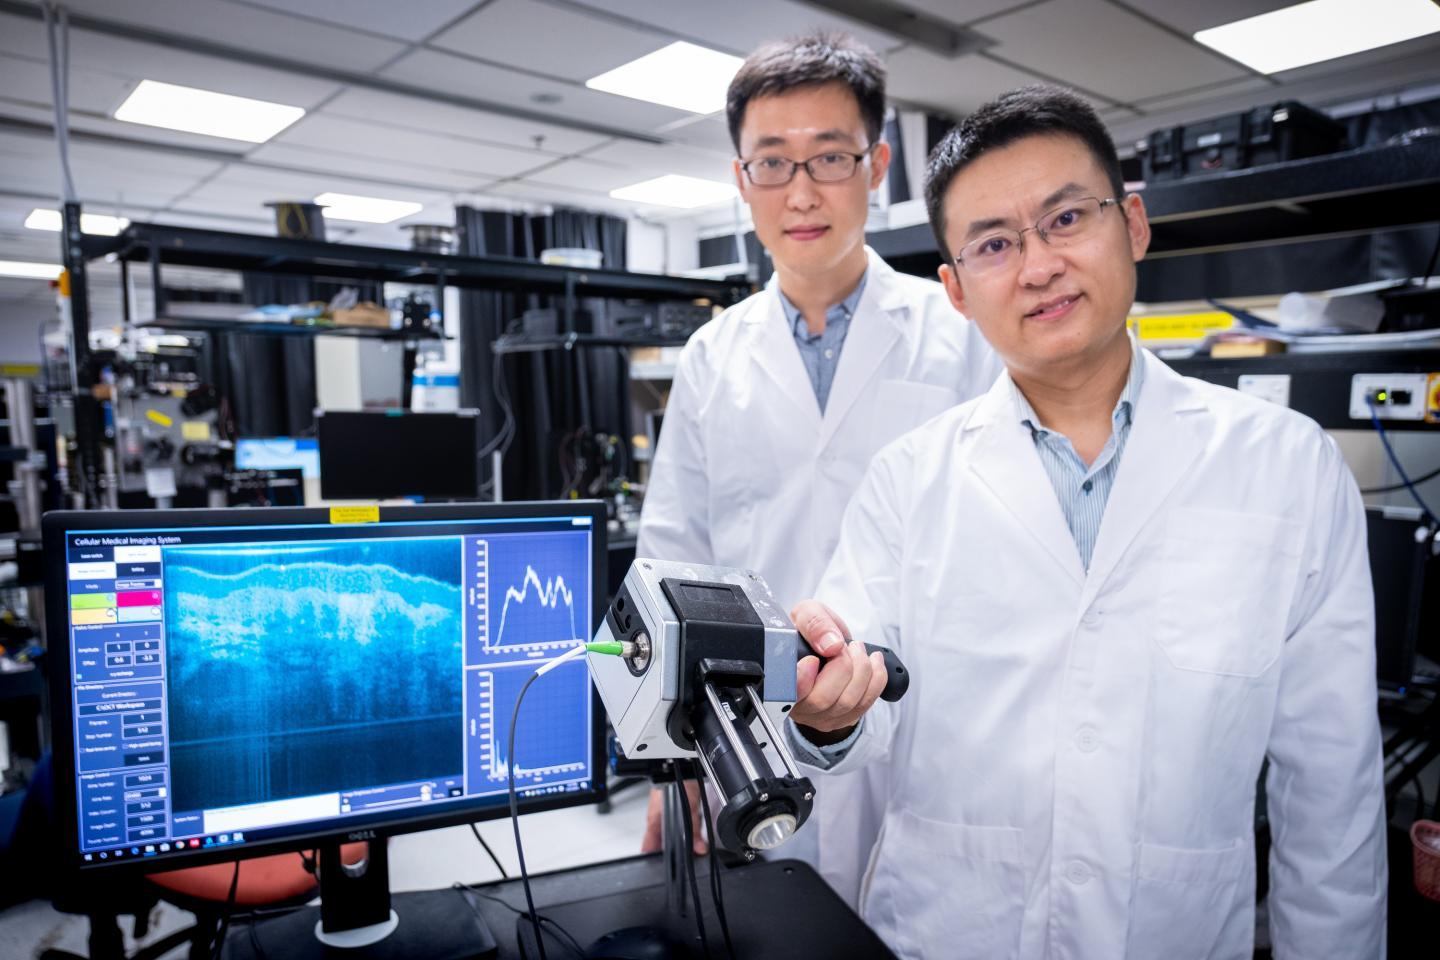 Scientists Develop Handheld, High-Res Medical Imaging Device